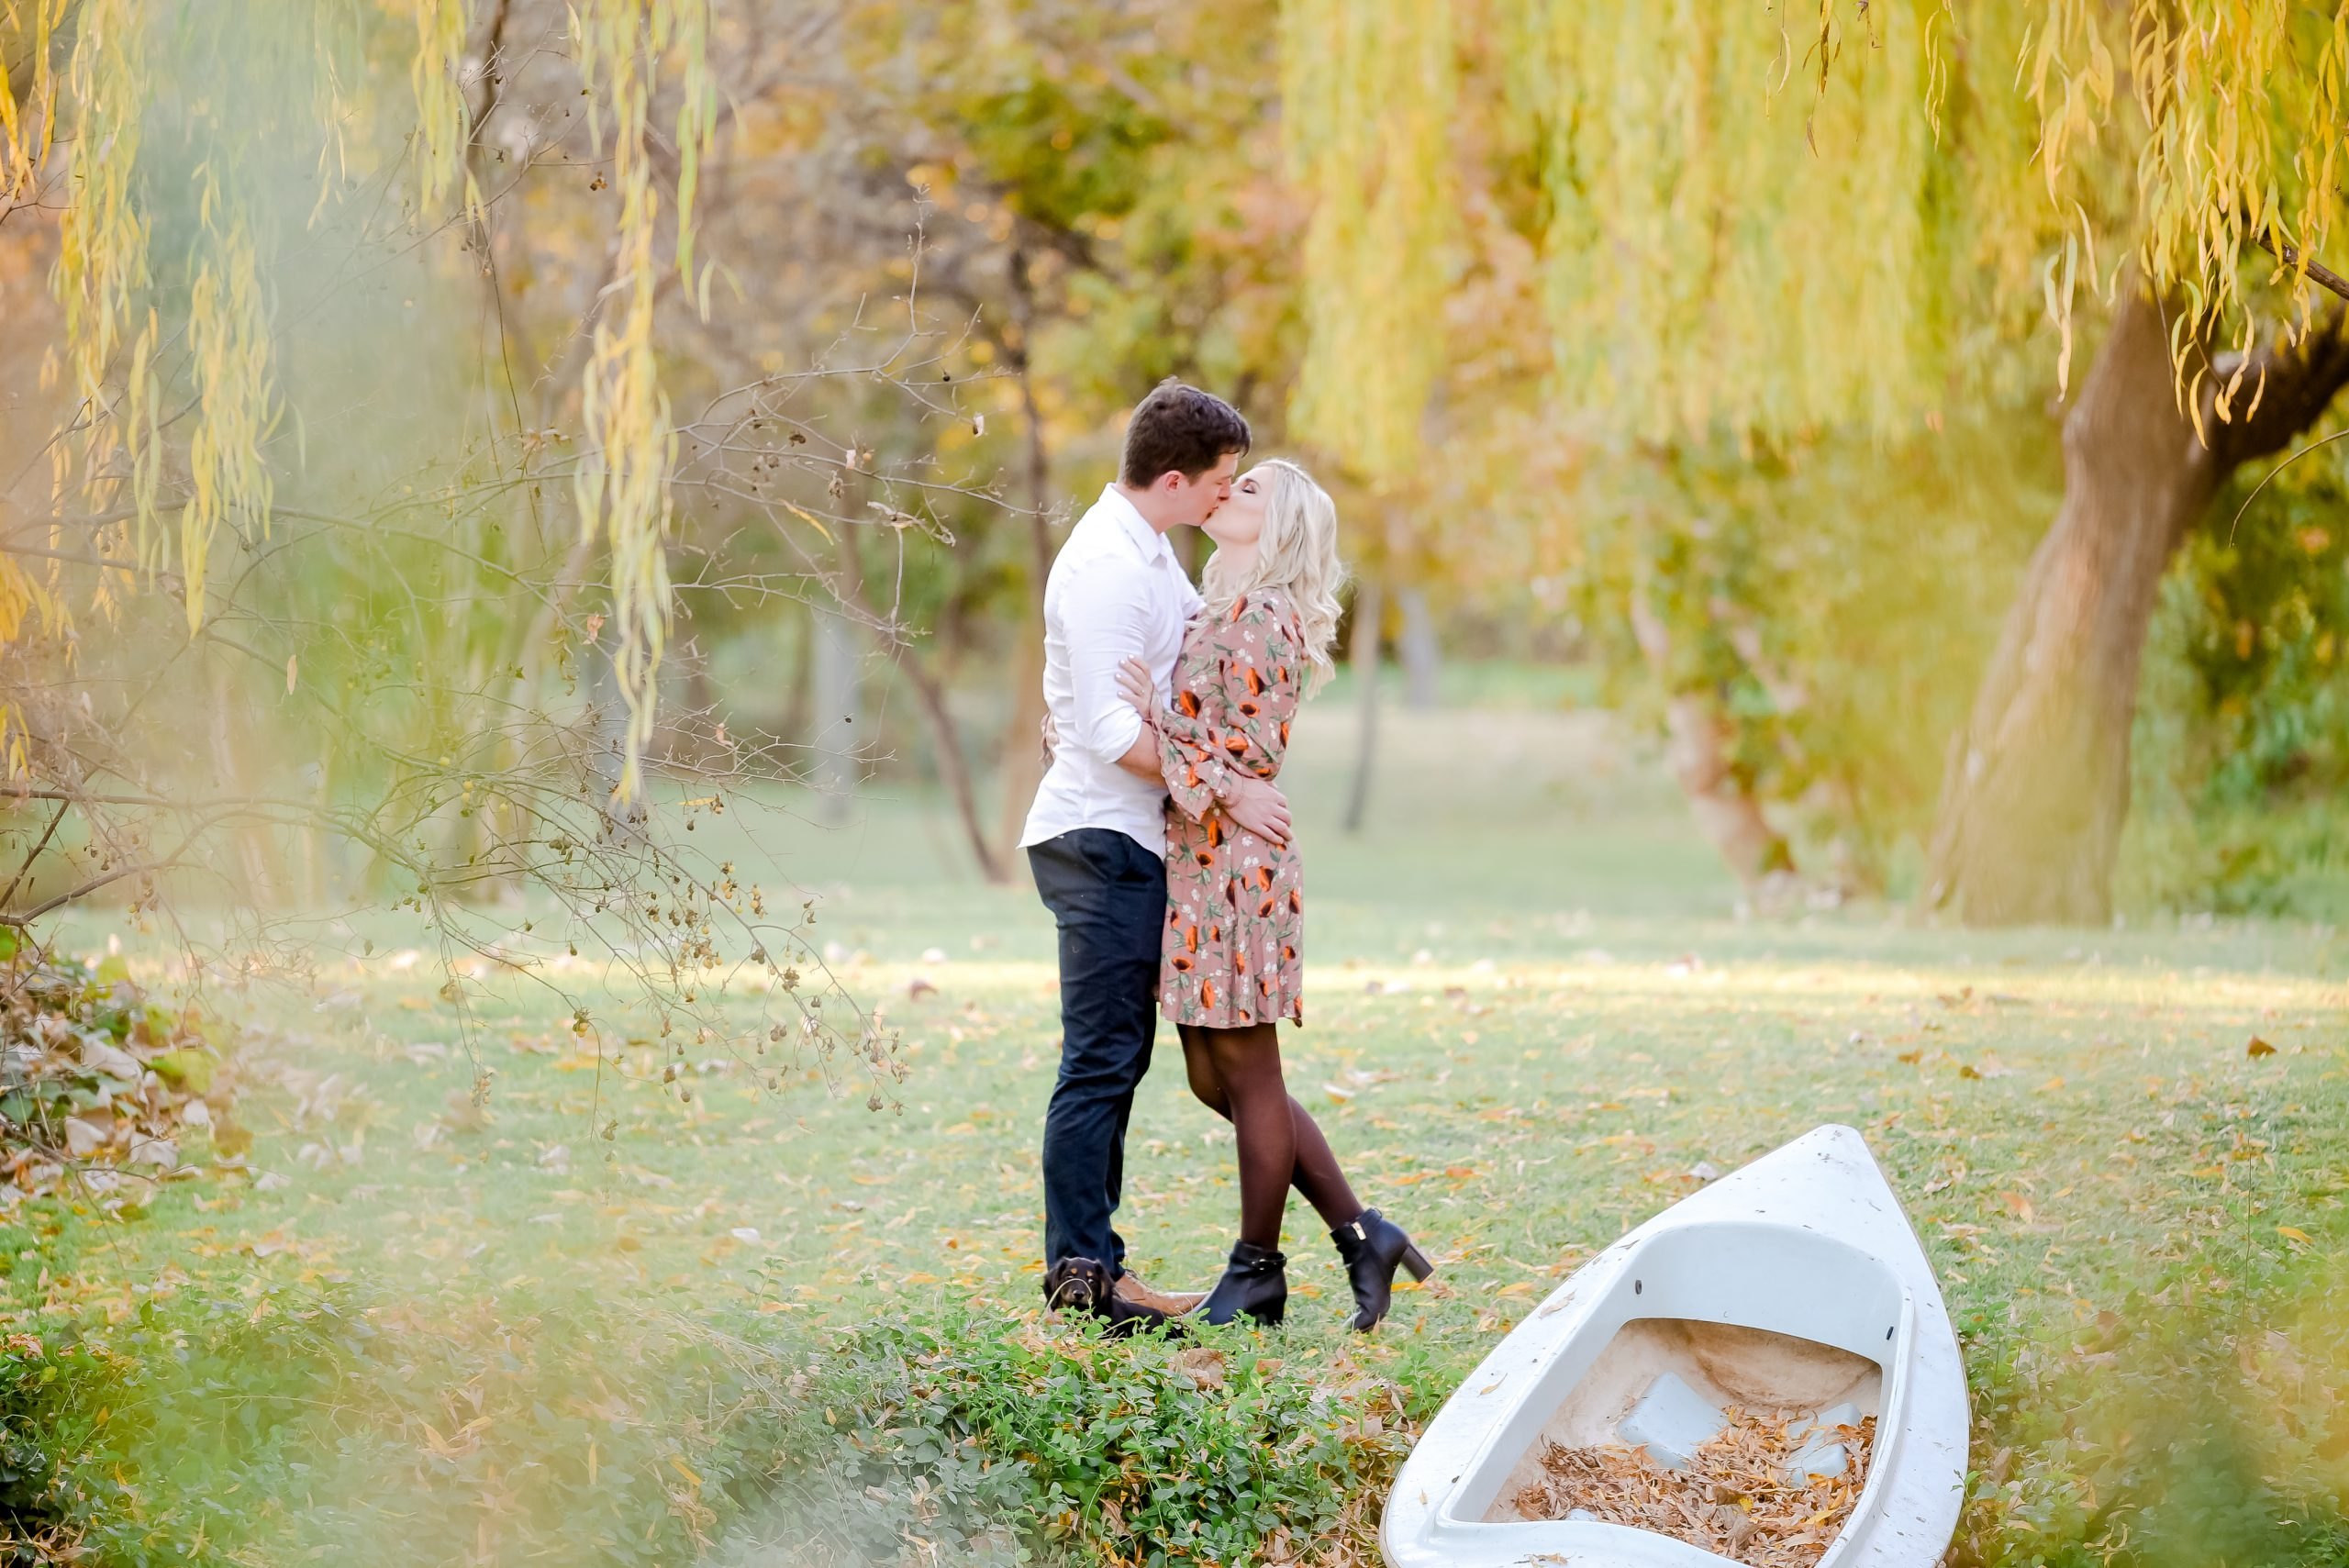 Engagement Photoshoot at Rosella Farm Bloemfontein with Puppy